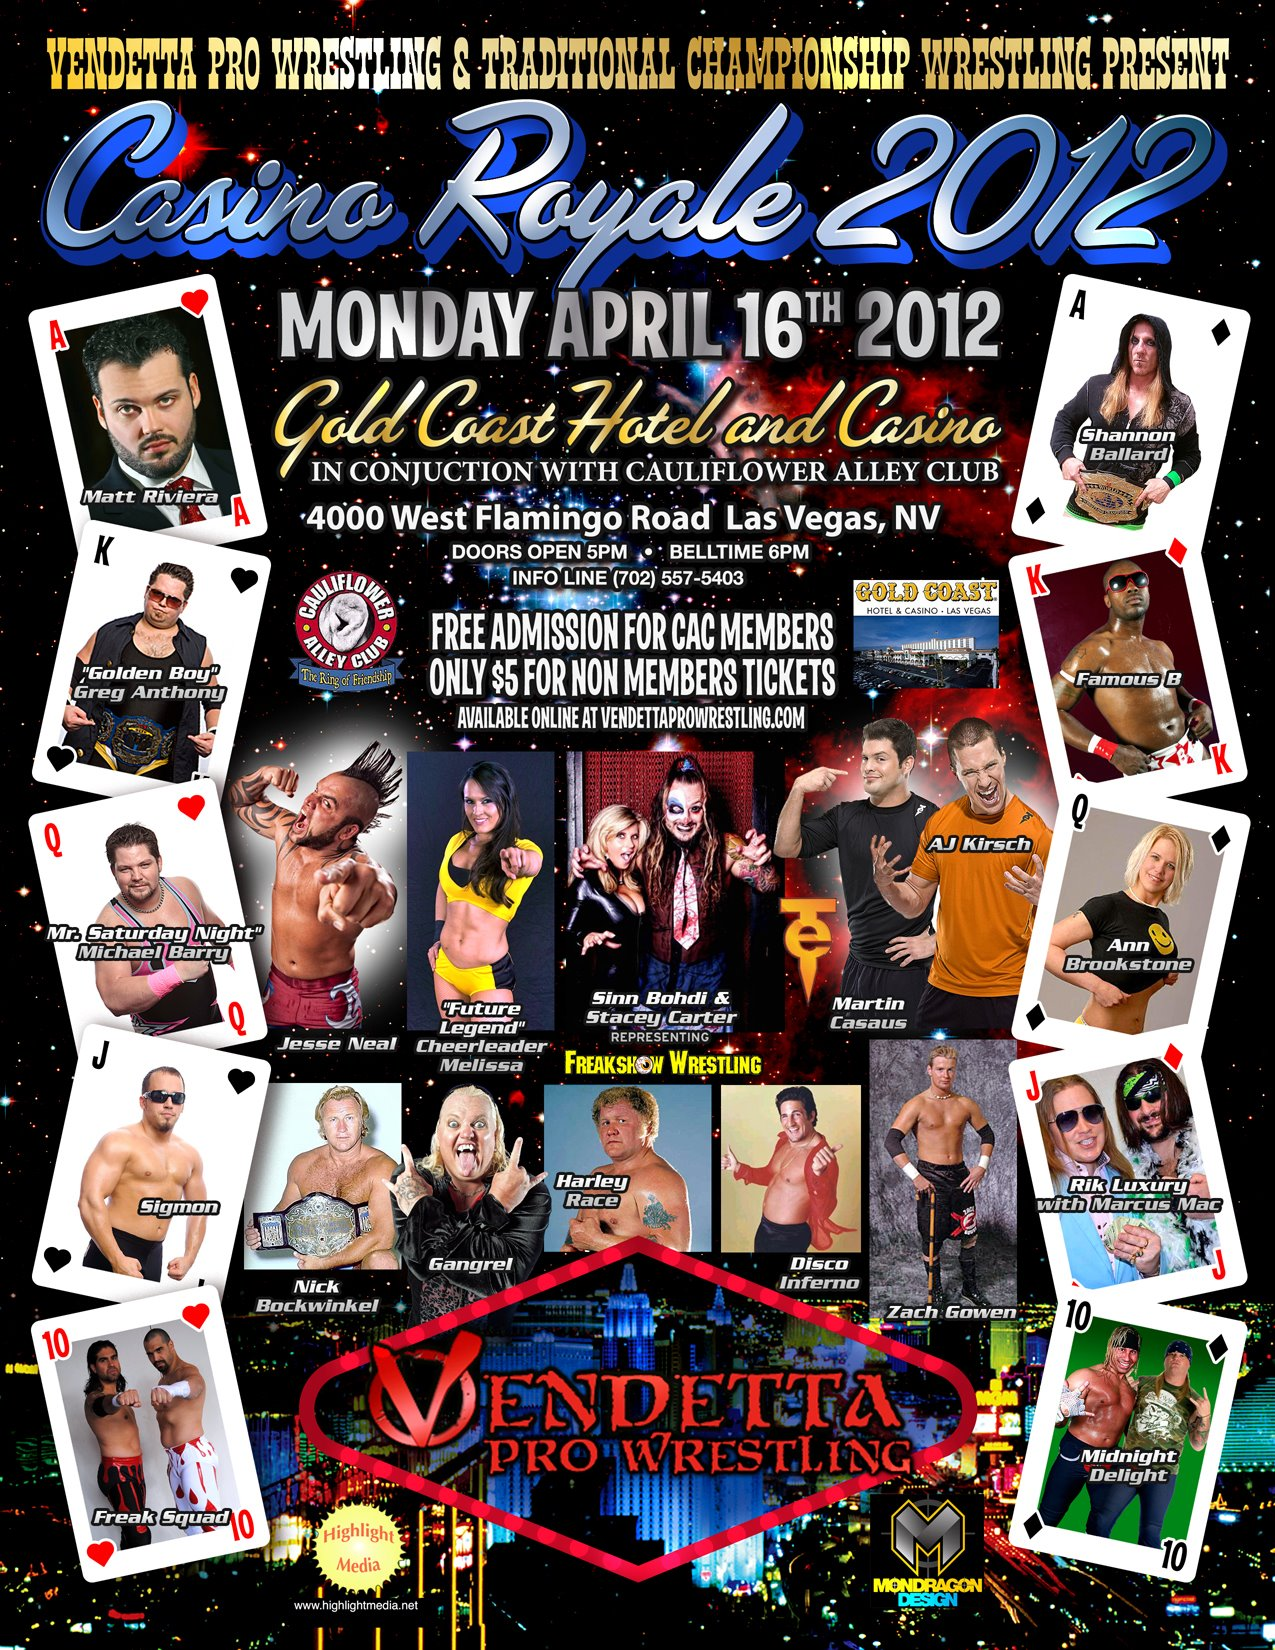 Casino Royale 2012 event flyer